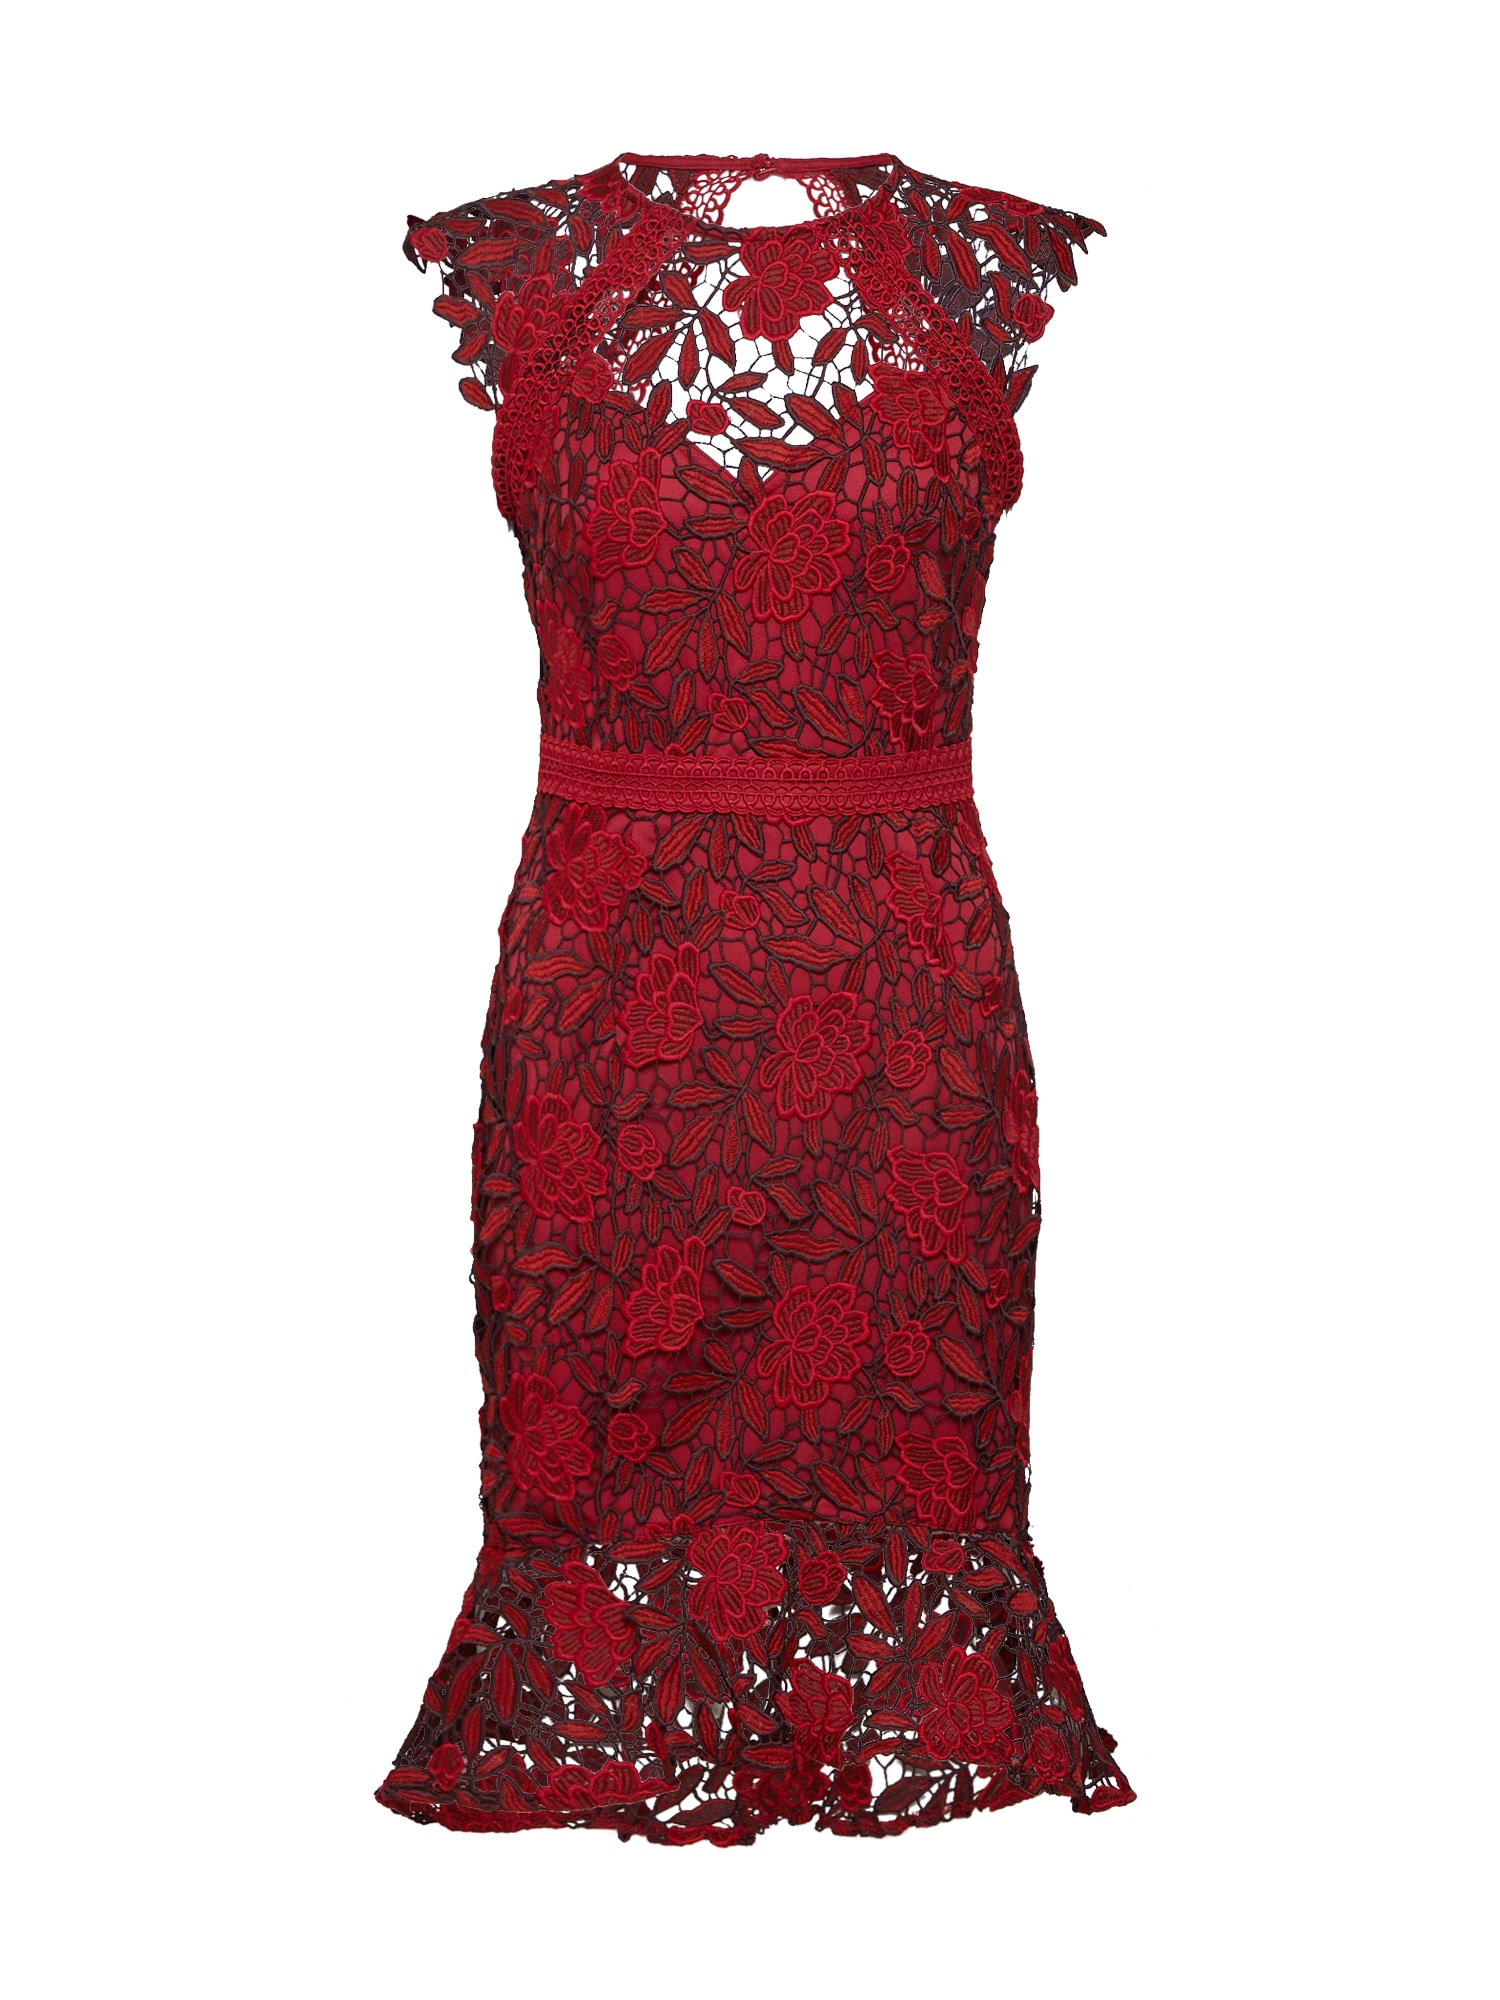 Cocktailkleid 'RED AO LACE DRESS(KATE MOVE ON)' | Bekleidung > Kleider > Cocktailkleider | Lipsy